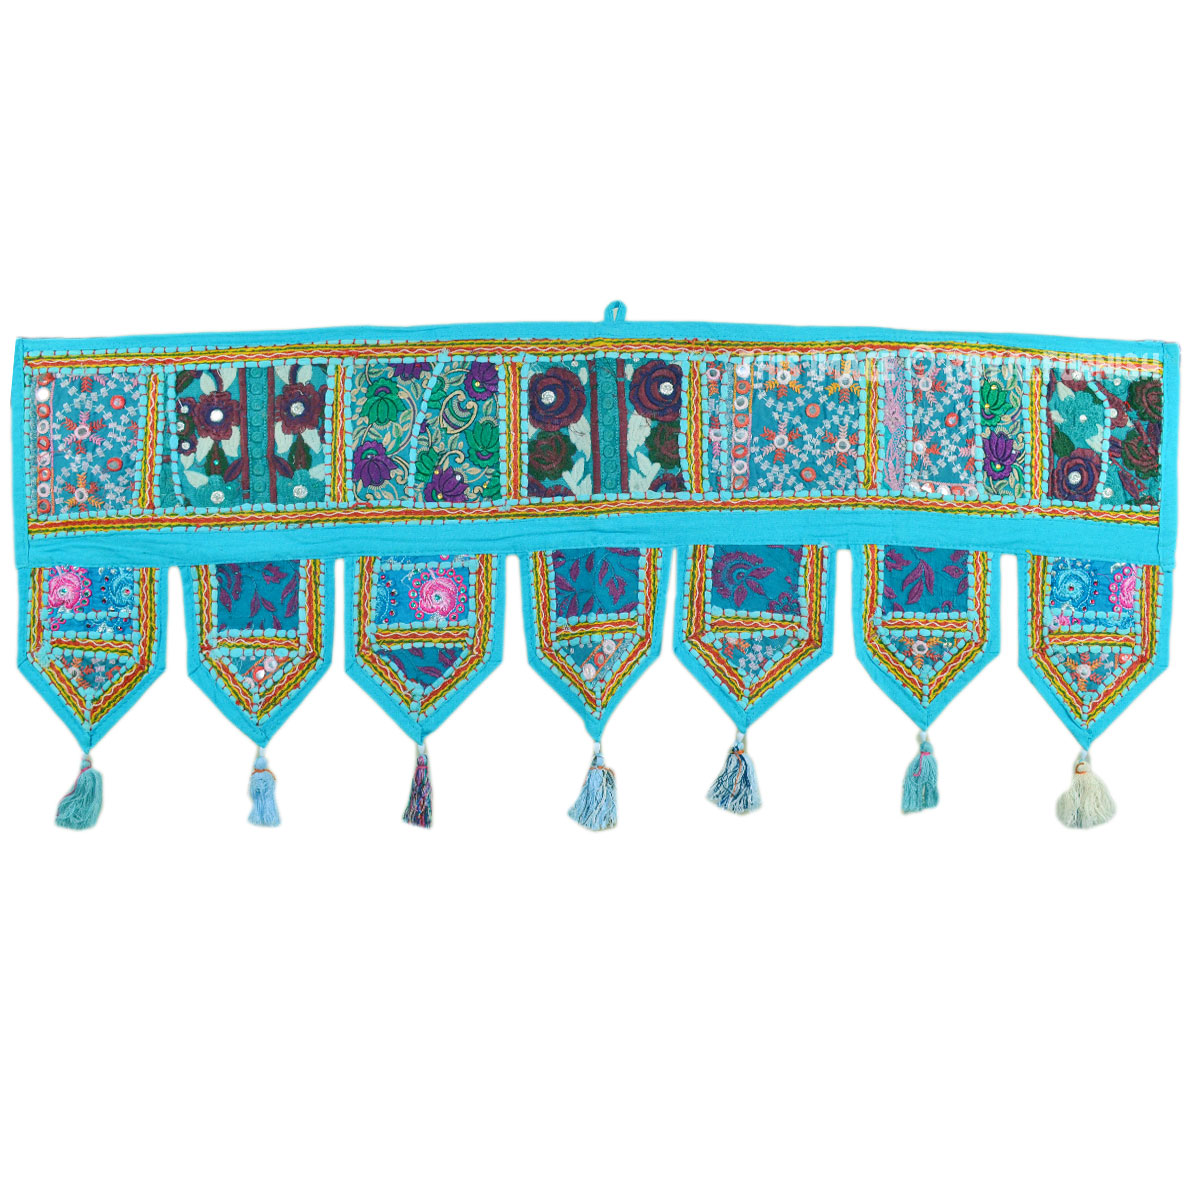 Turquoise Needlepoint Patchwork Embroidered Window Valance